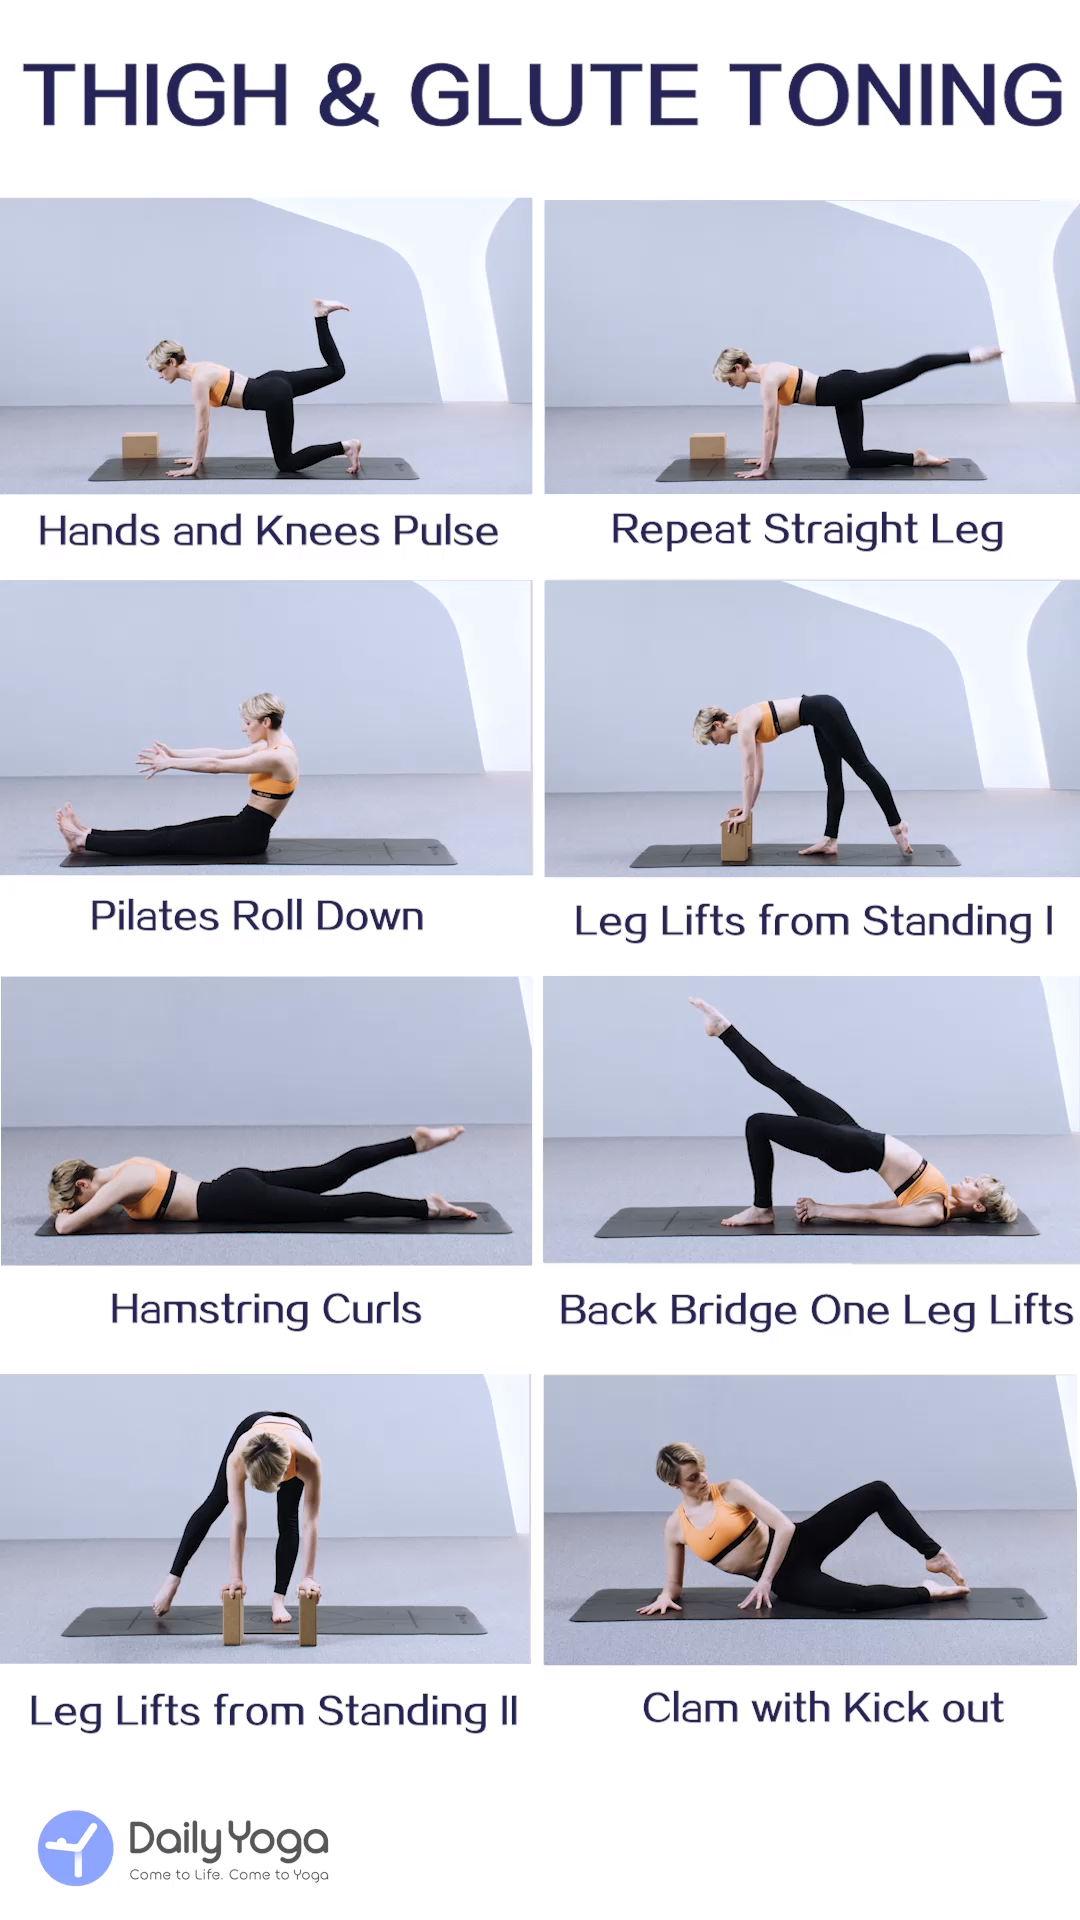 DailyYogaApp|Thigh & Glute Toning